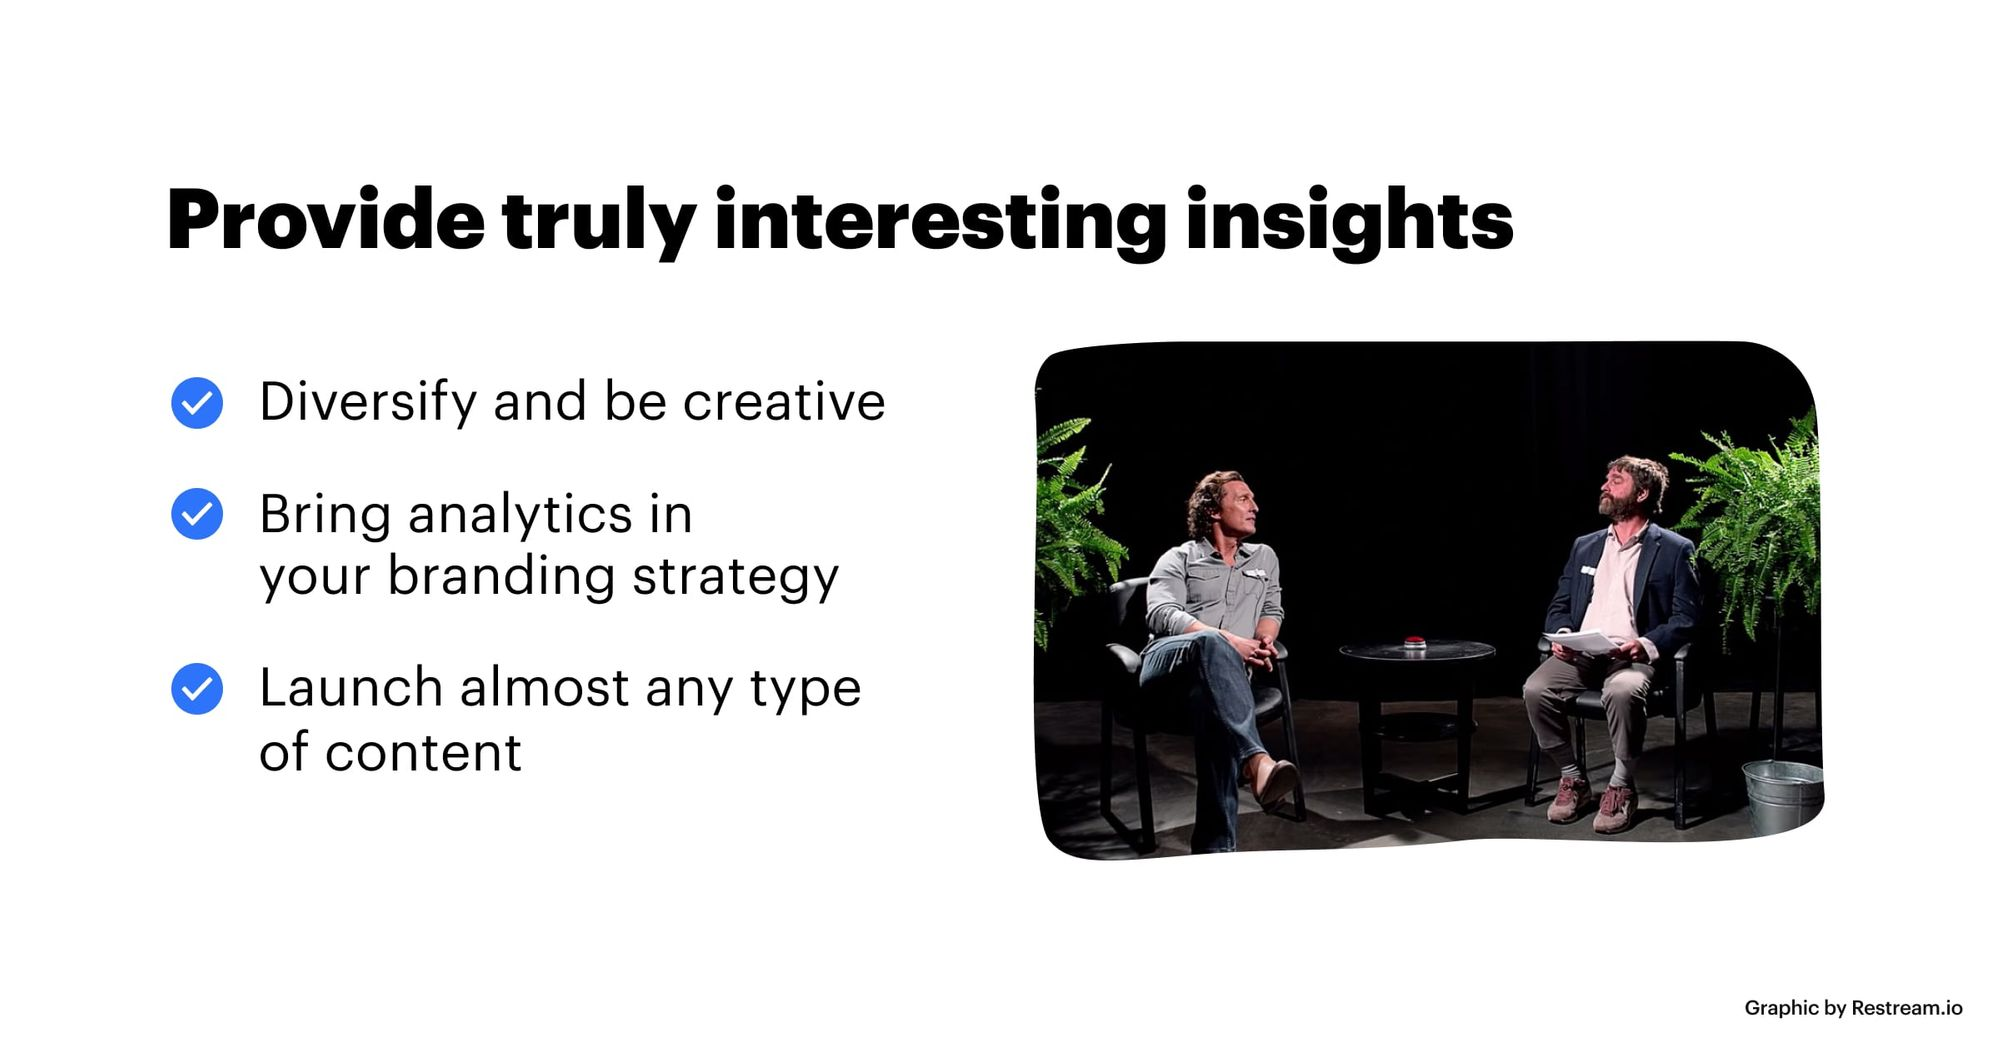 Provide truly interesting insights